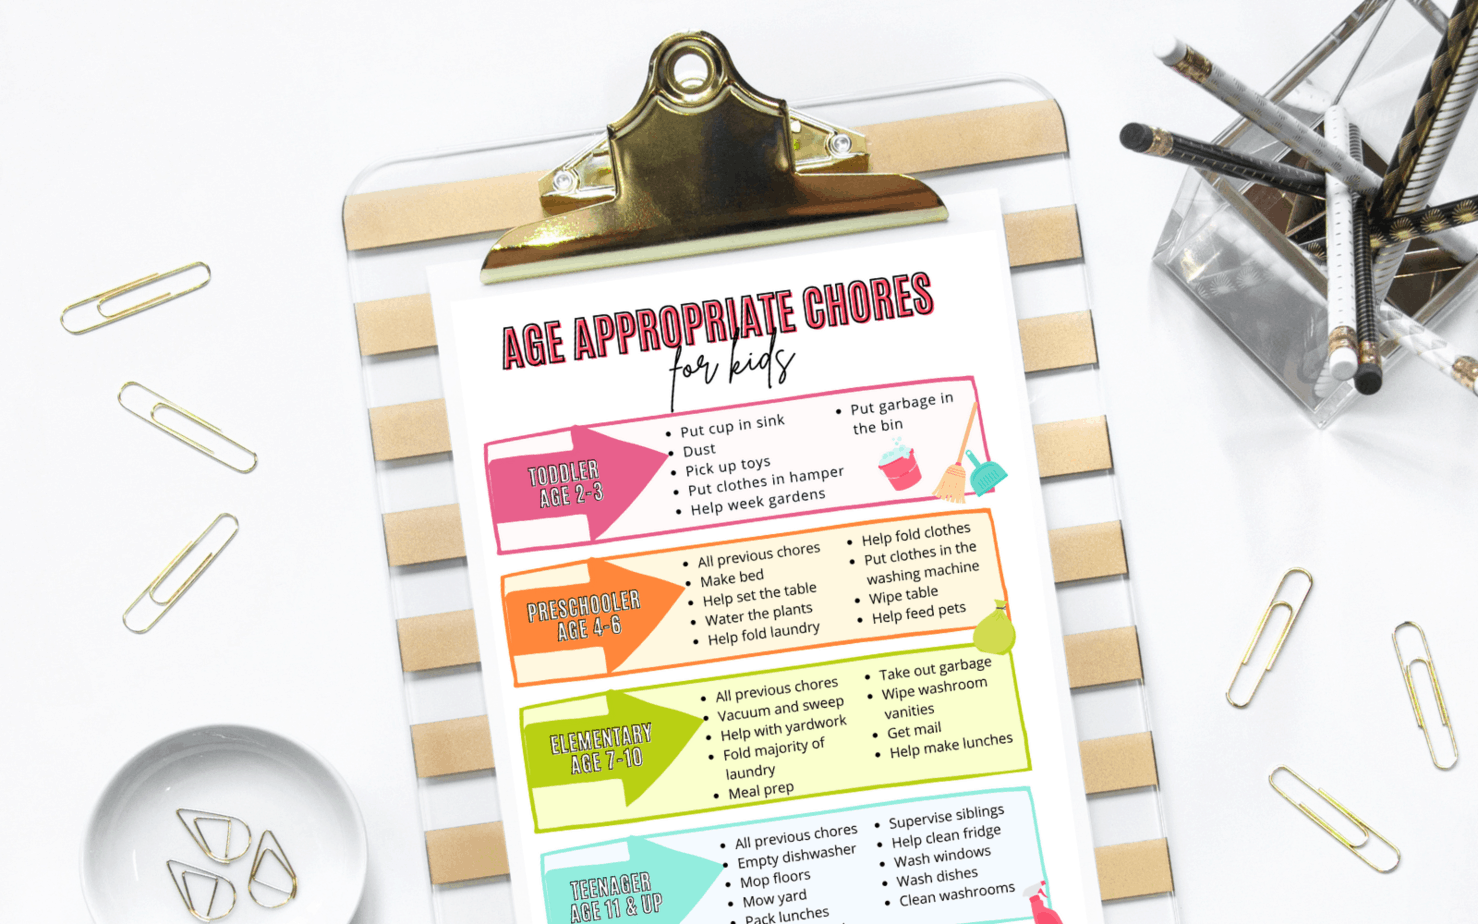 Giant Chore List for Kids By Age (Age-Appropriate Chores For Kids)